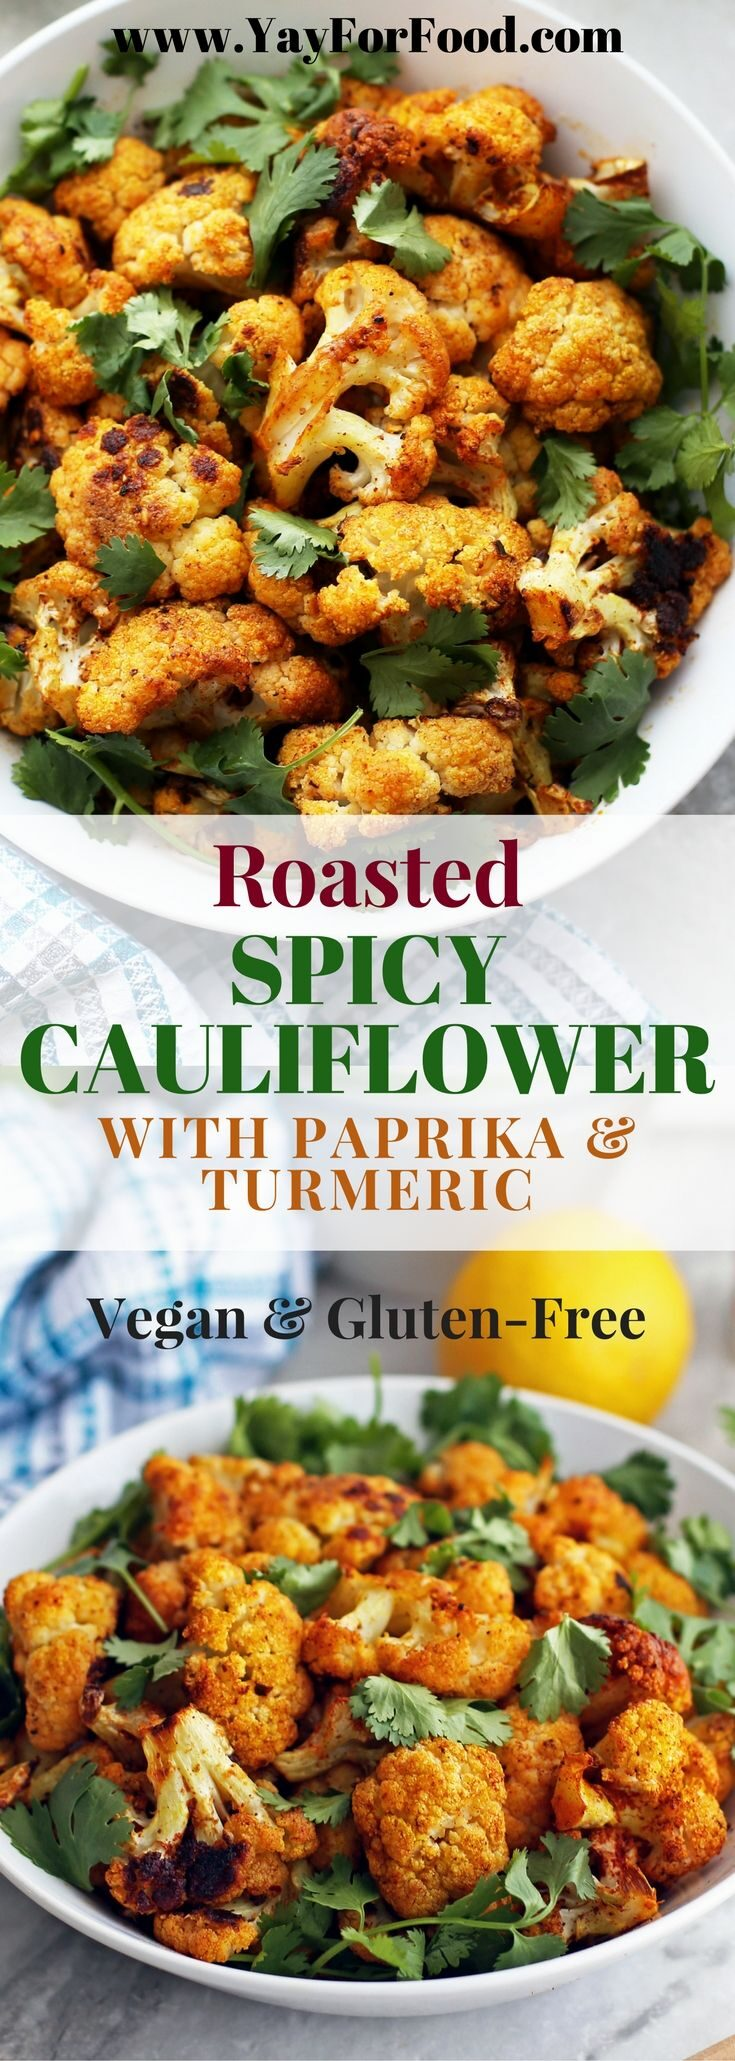 This tasty roasted spiced cauliflower side dish is easy, flavourful, and healthy. It's naturally vegan and gluten-free too.